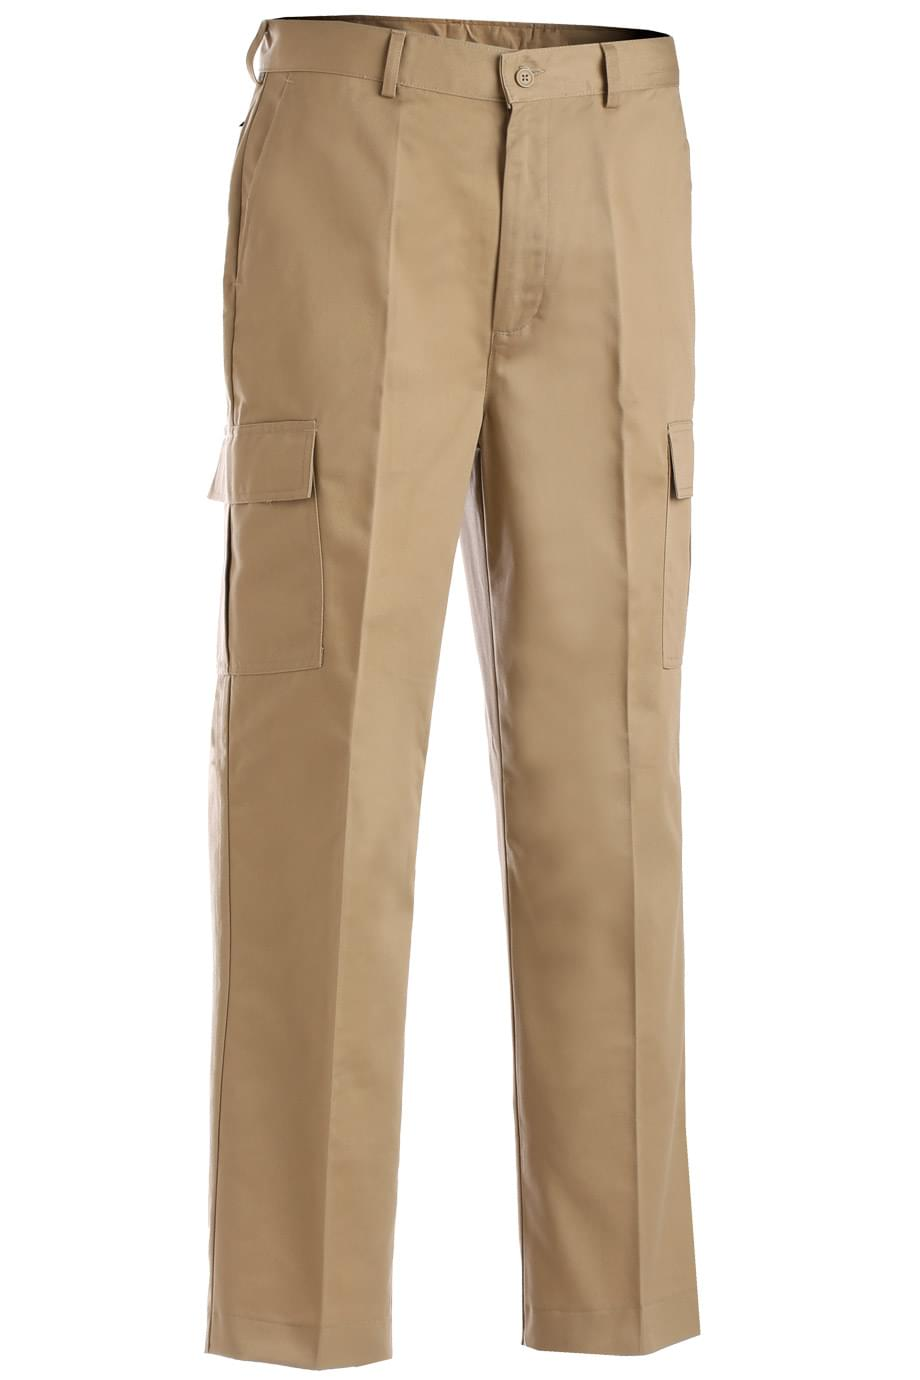 UTILITY CARGO FLAT FRONT PANT